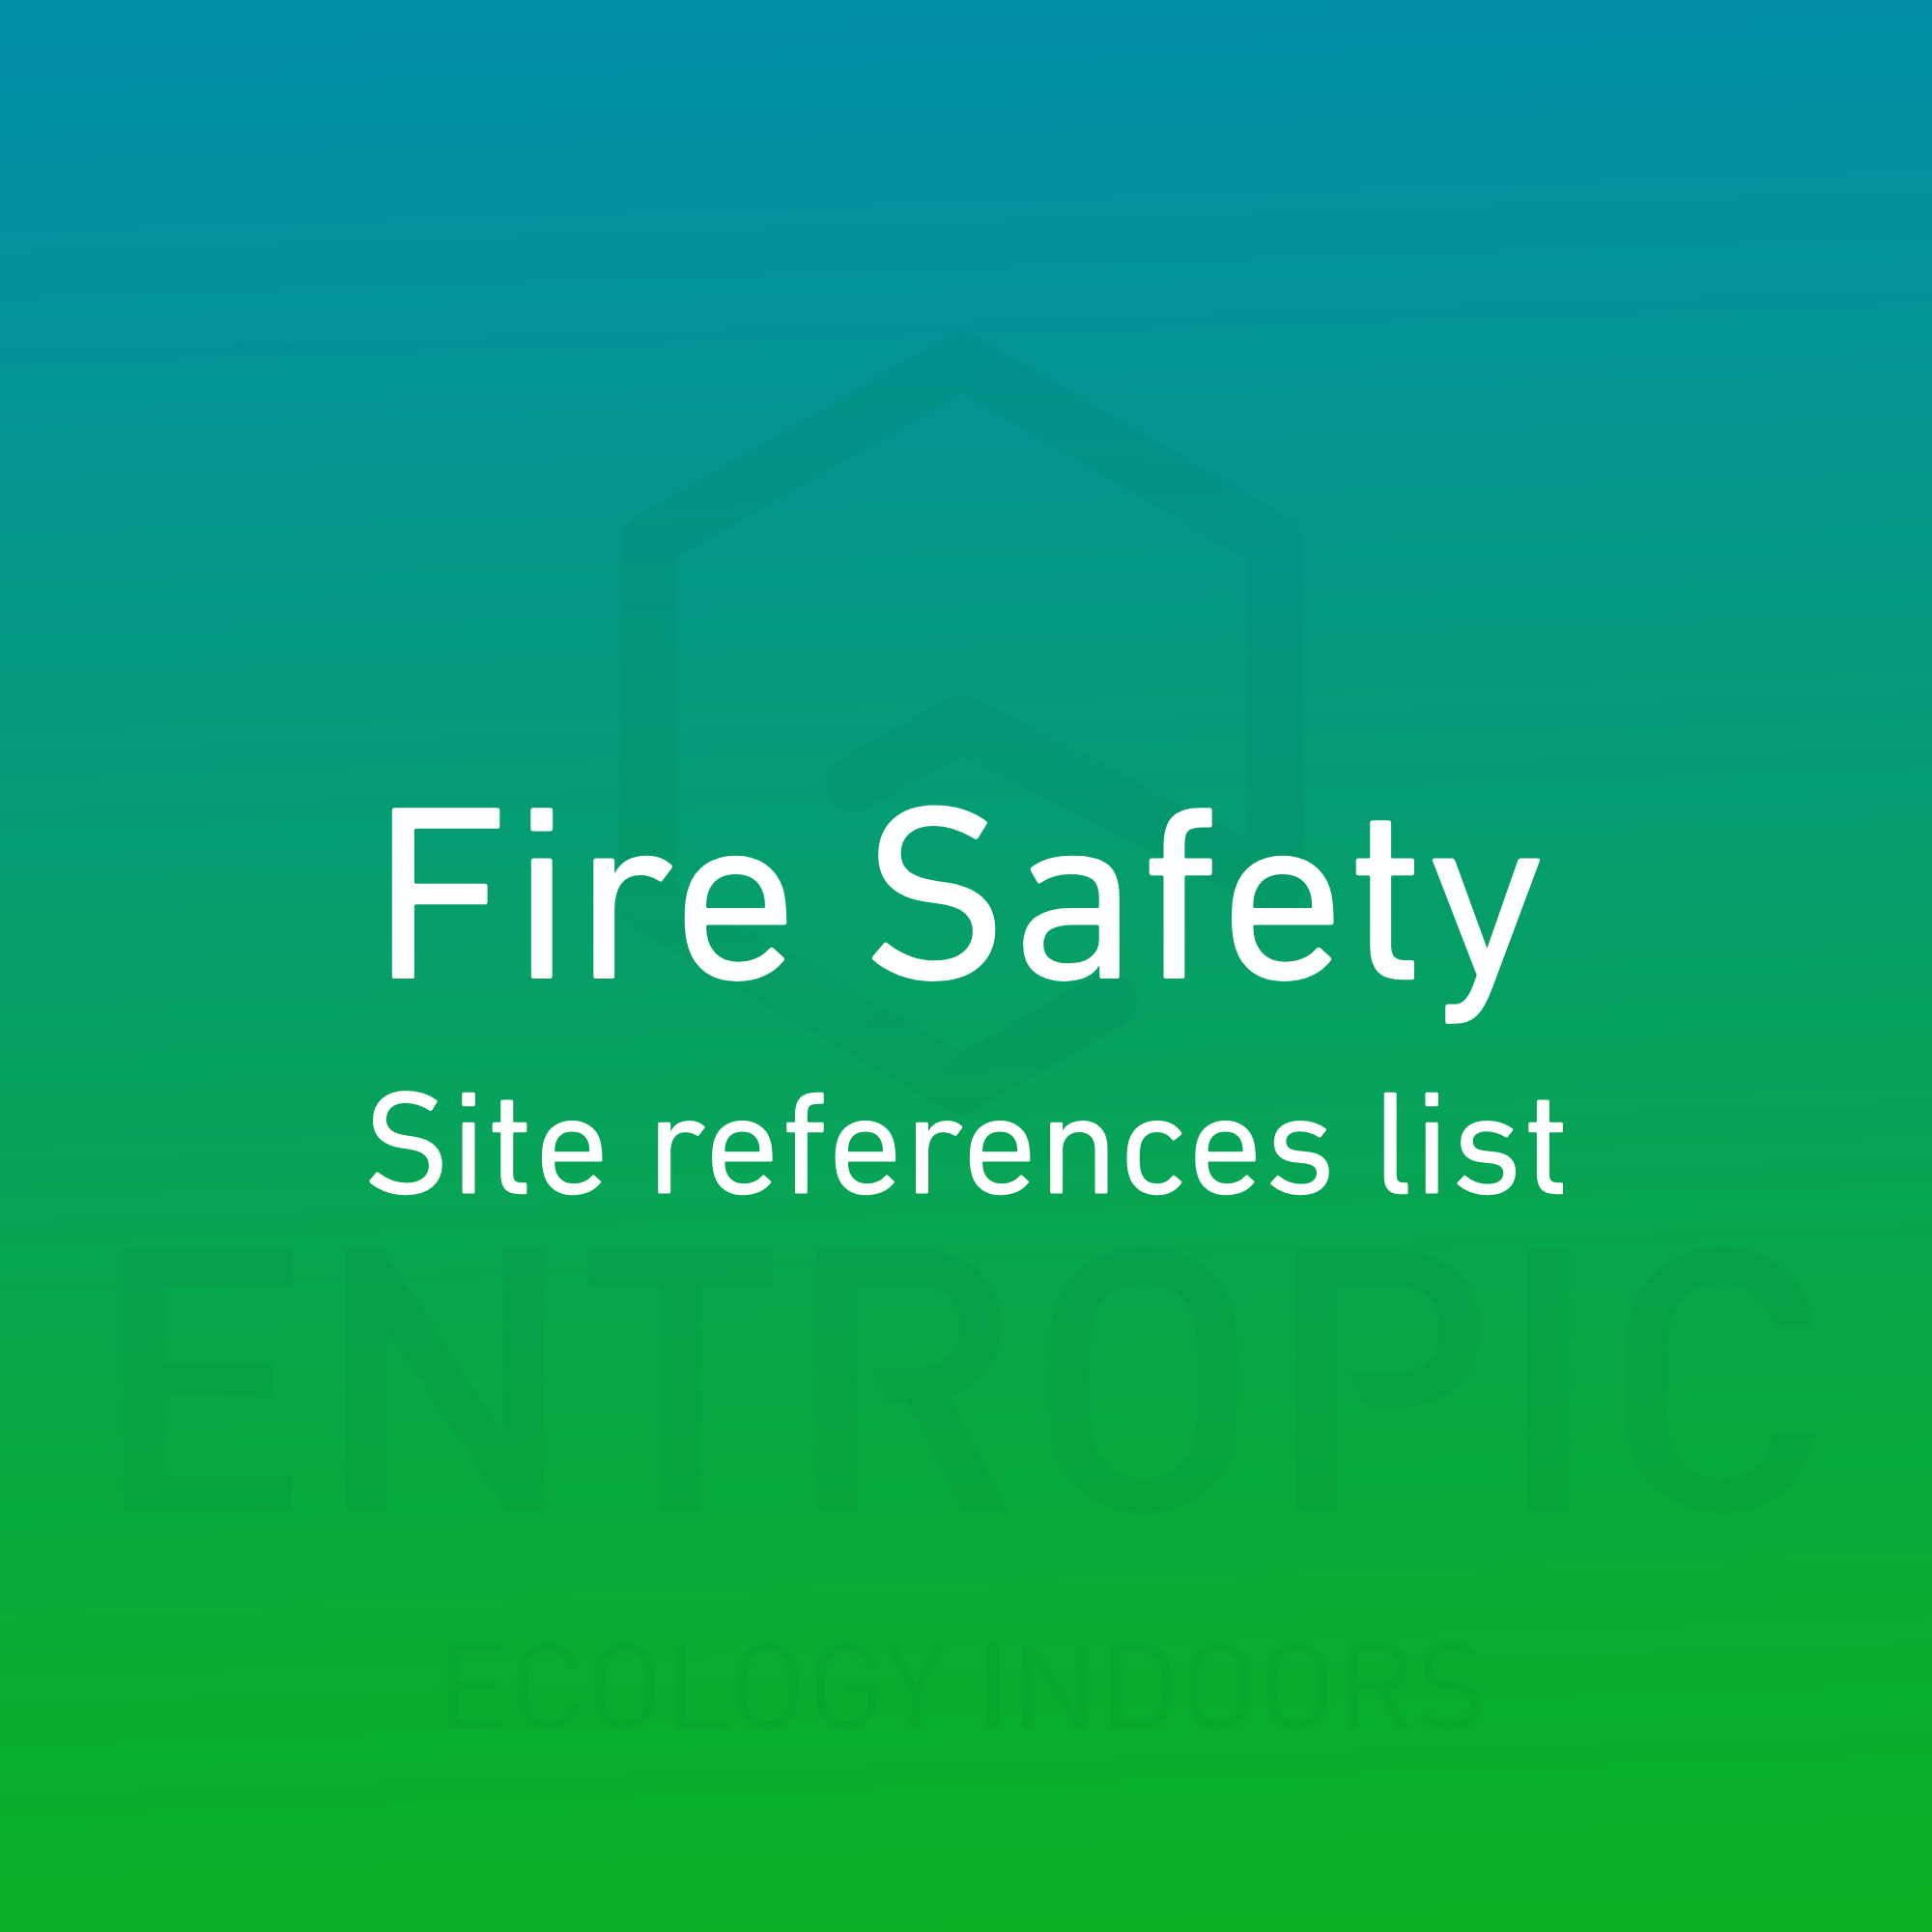 fire-safety-site-reference-list